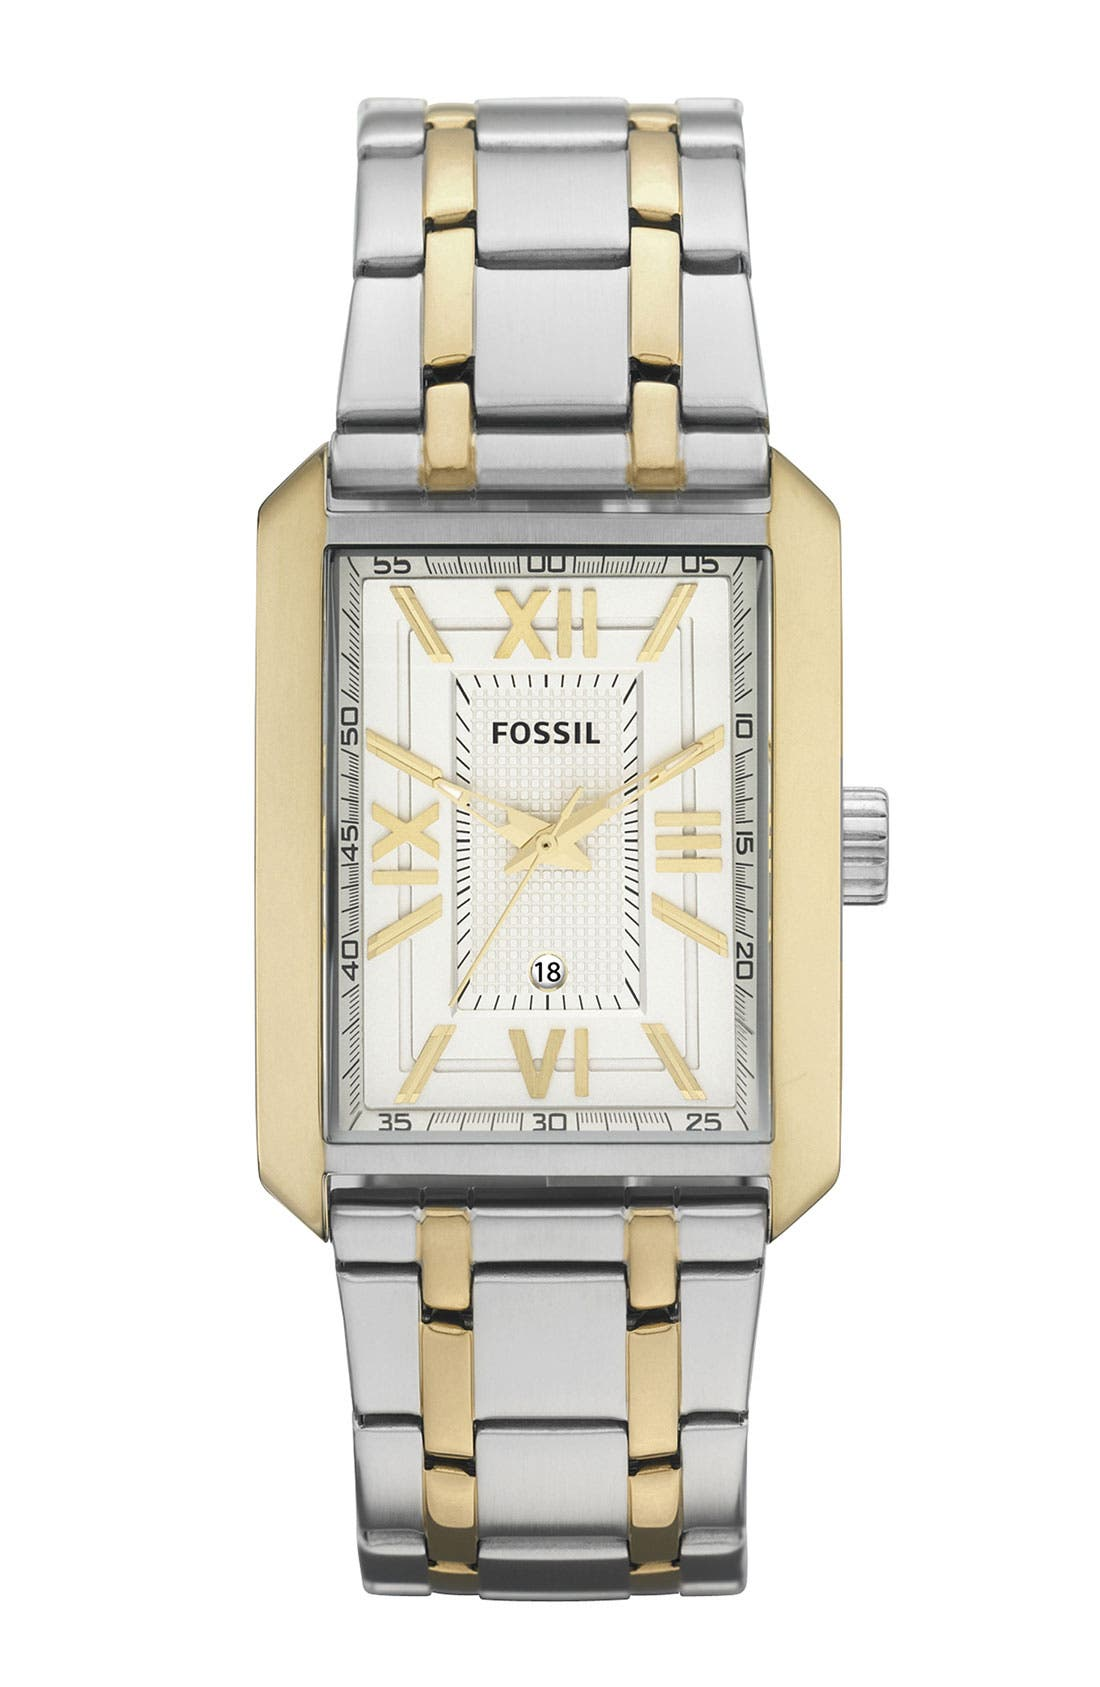 Main Image - Fossil 'Franklin' Square Case Watch